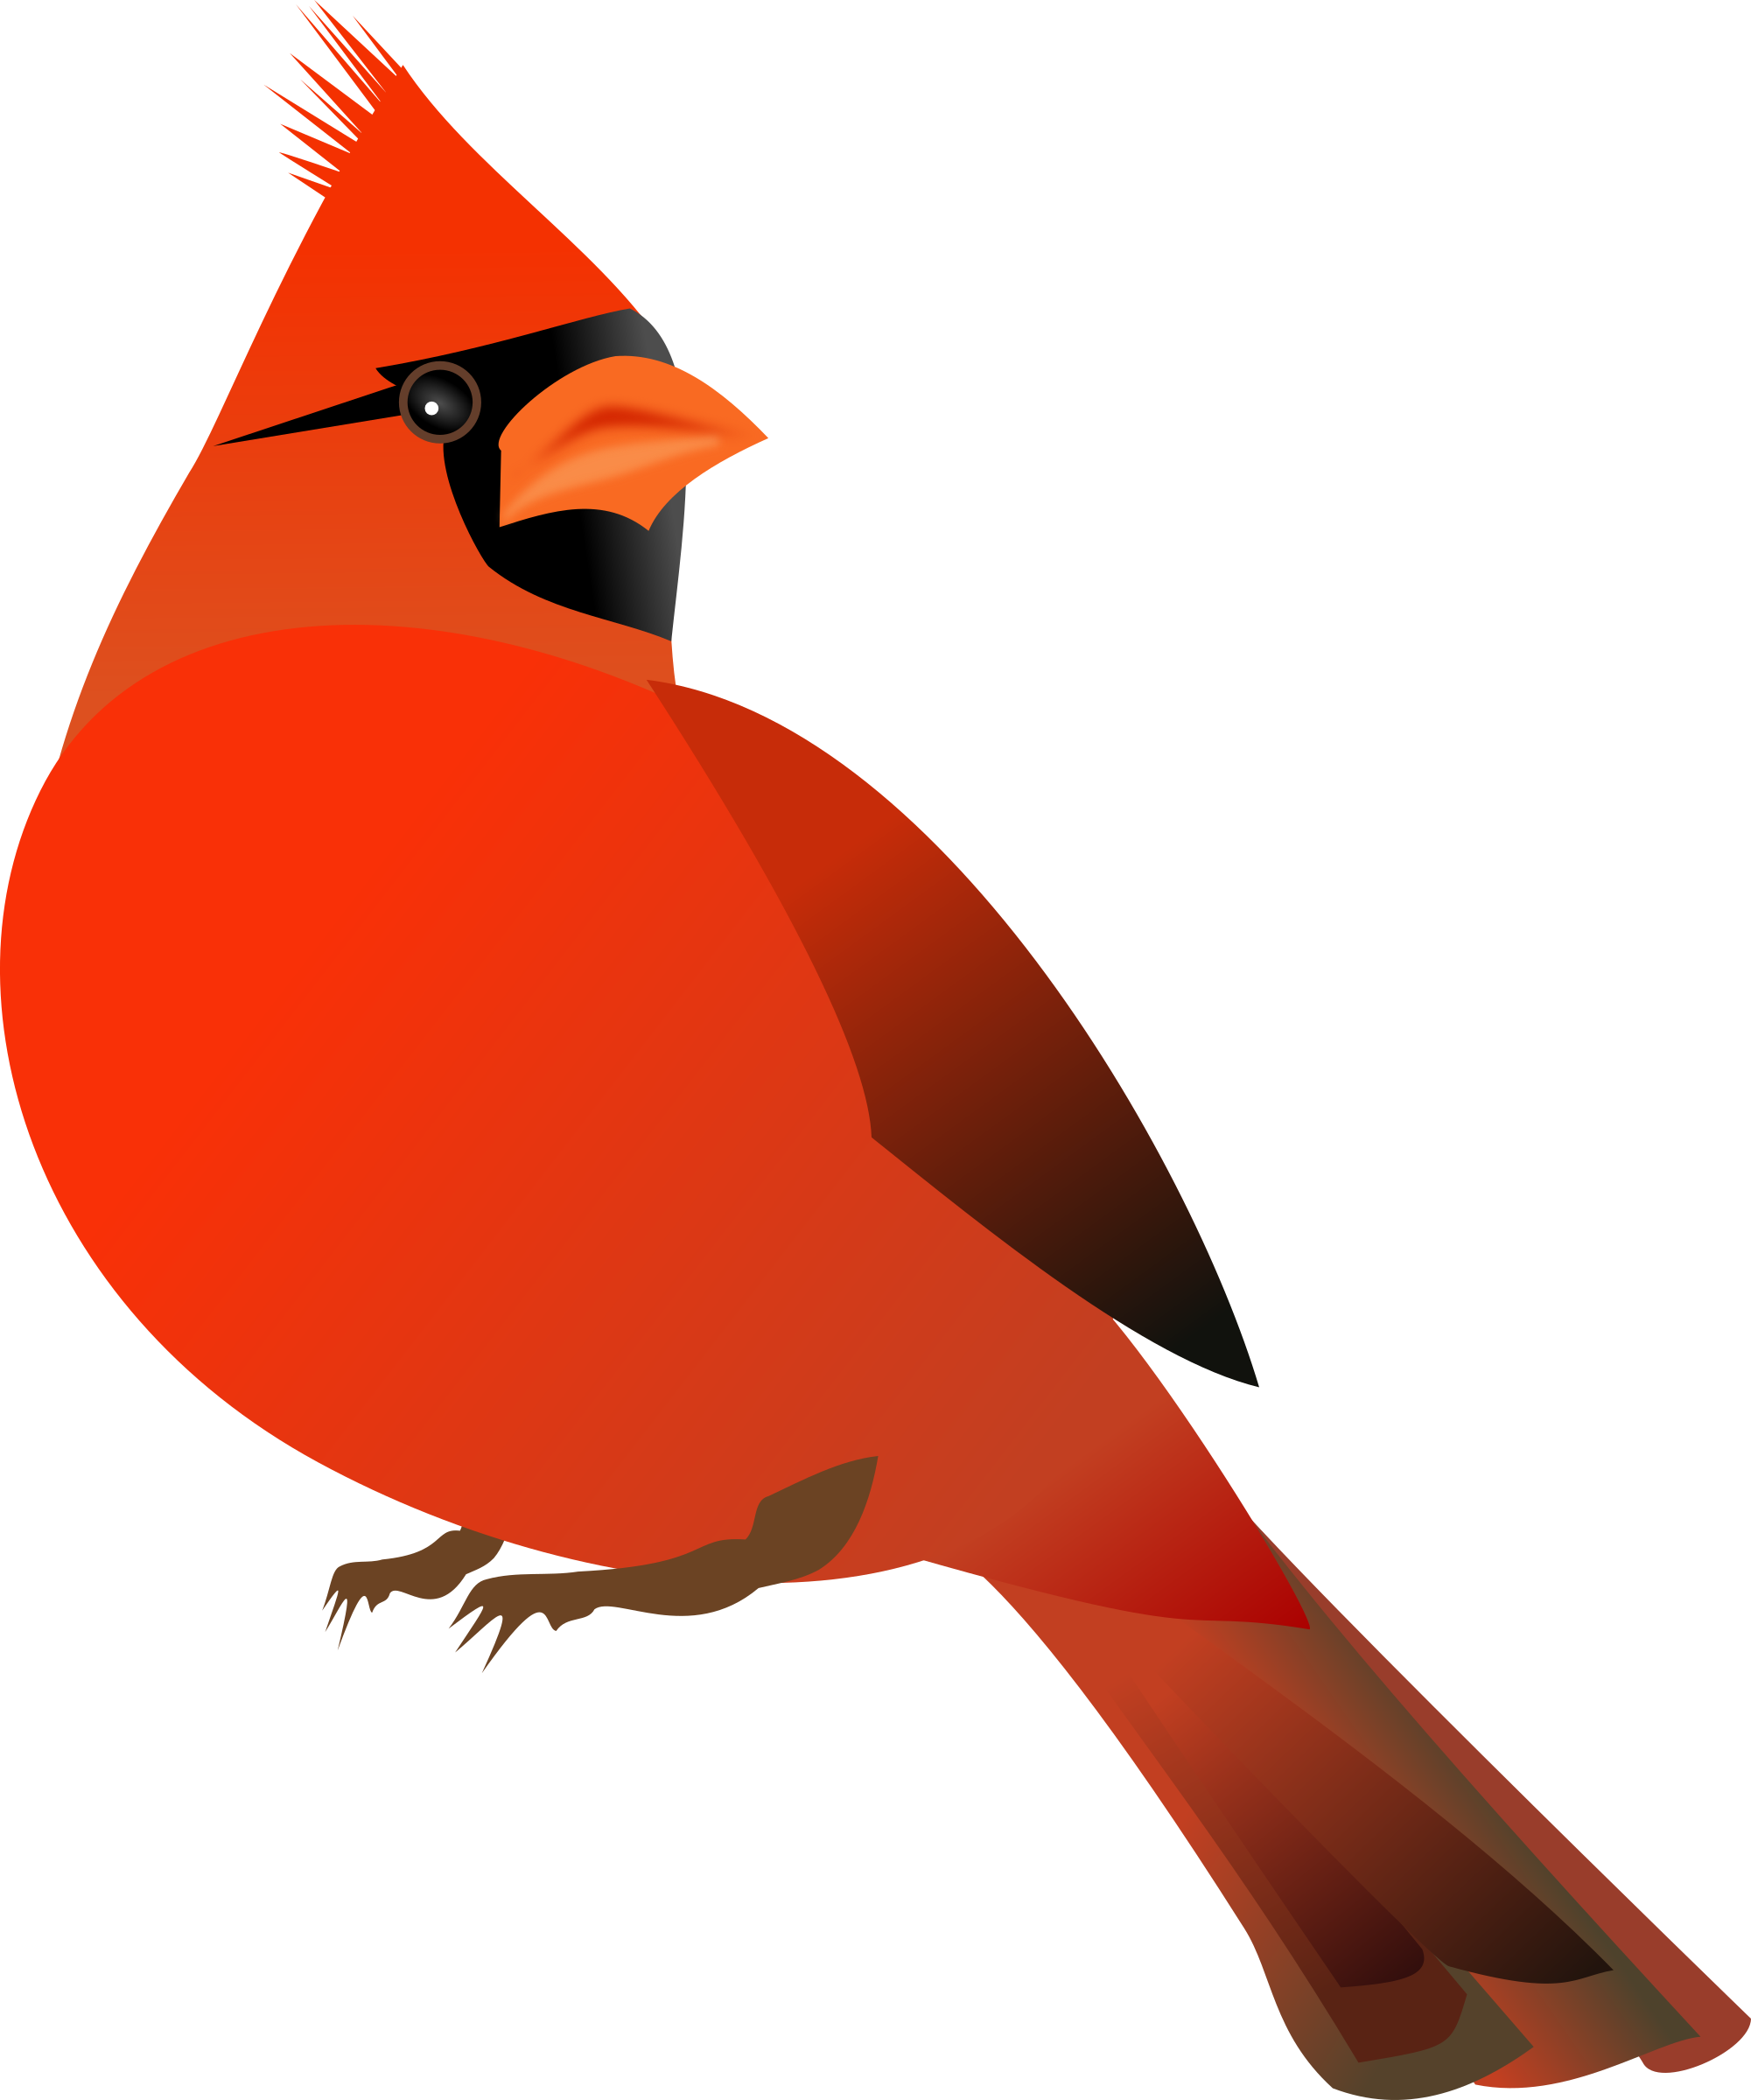 Red Cardinal by kattekrab